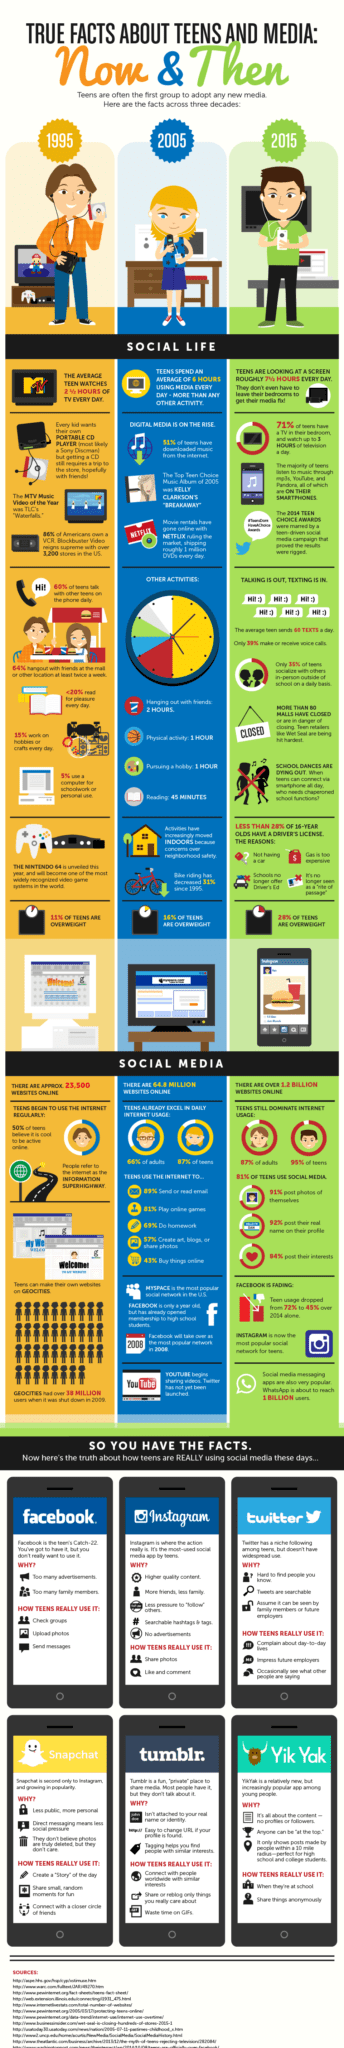 infographic teens and media